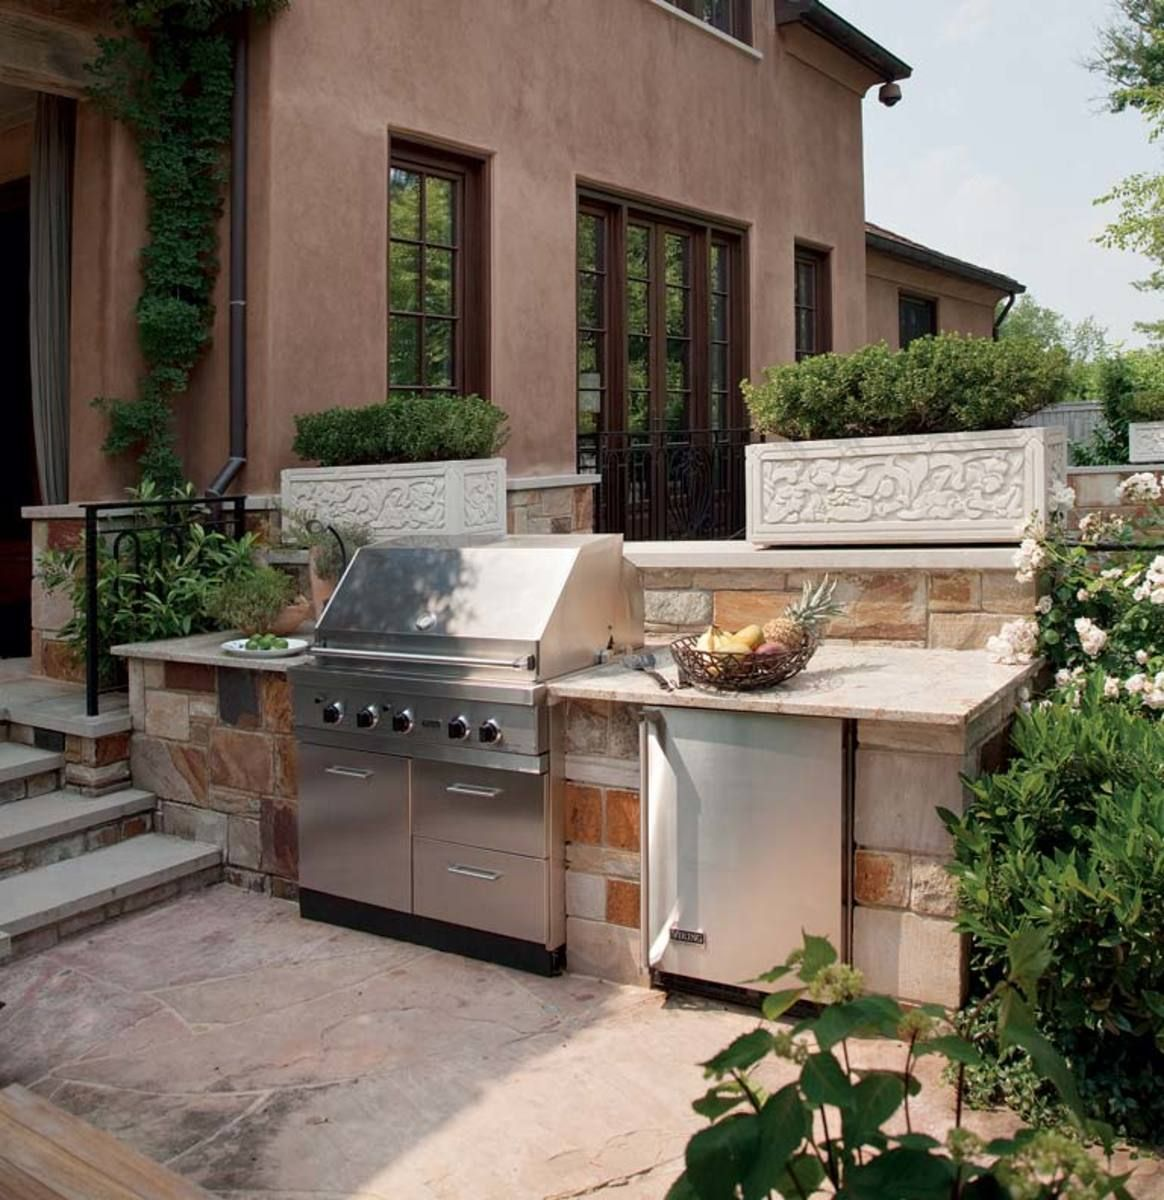 Tips For Designing An Outdoor Kitchen